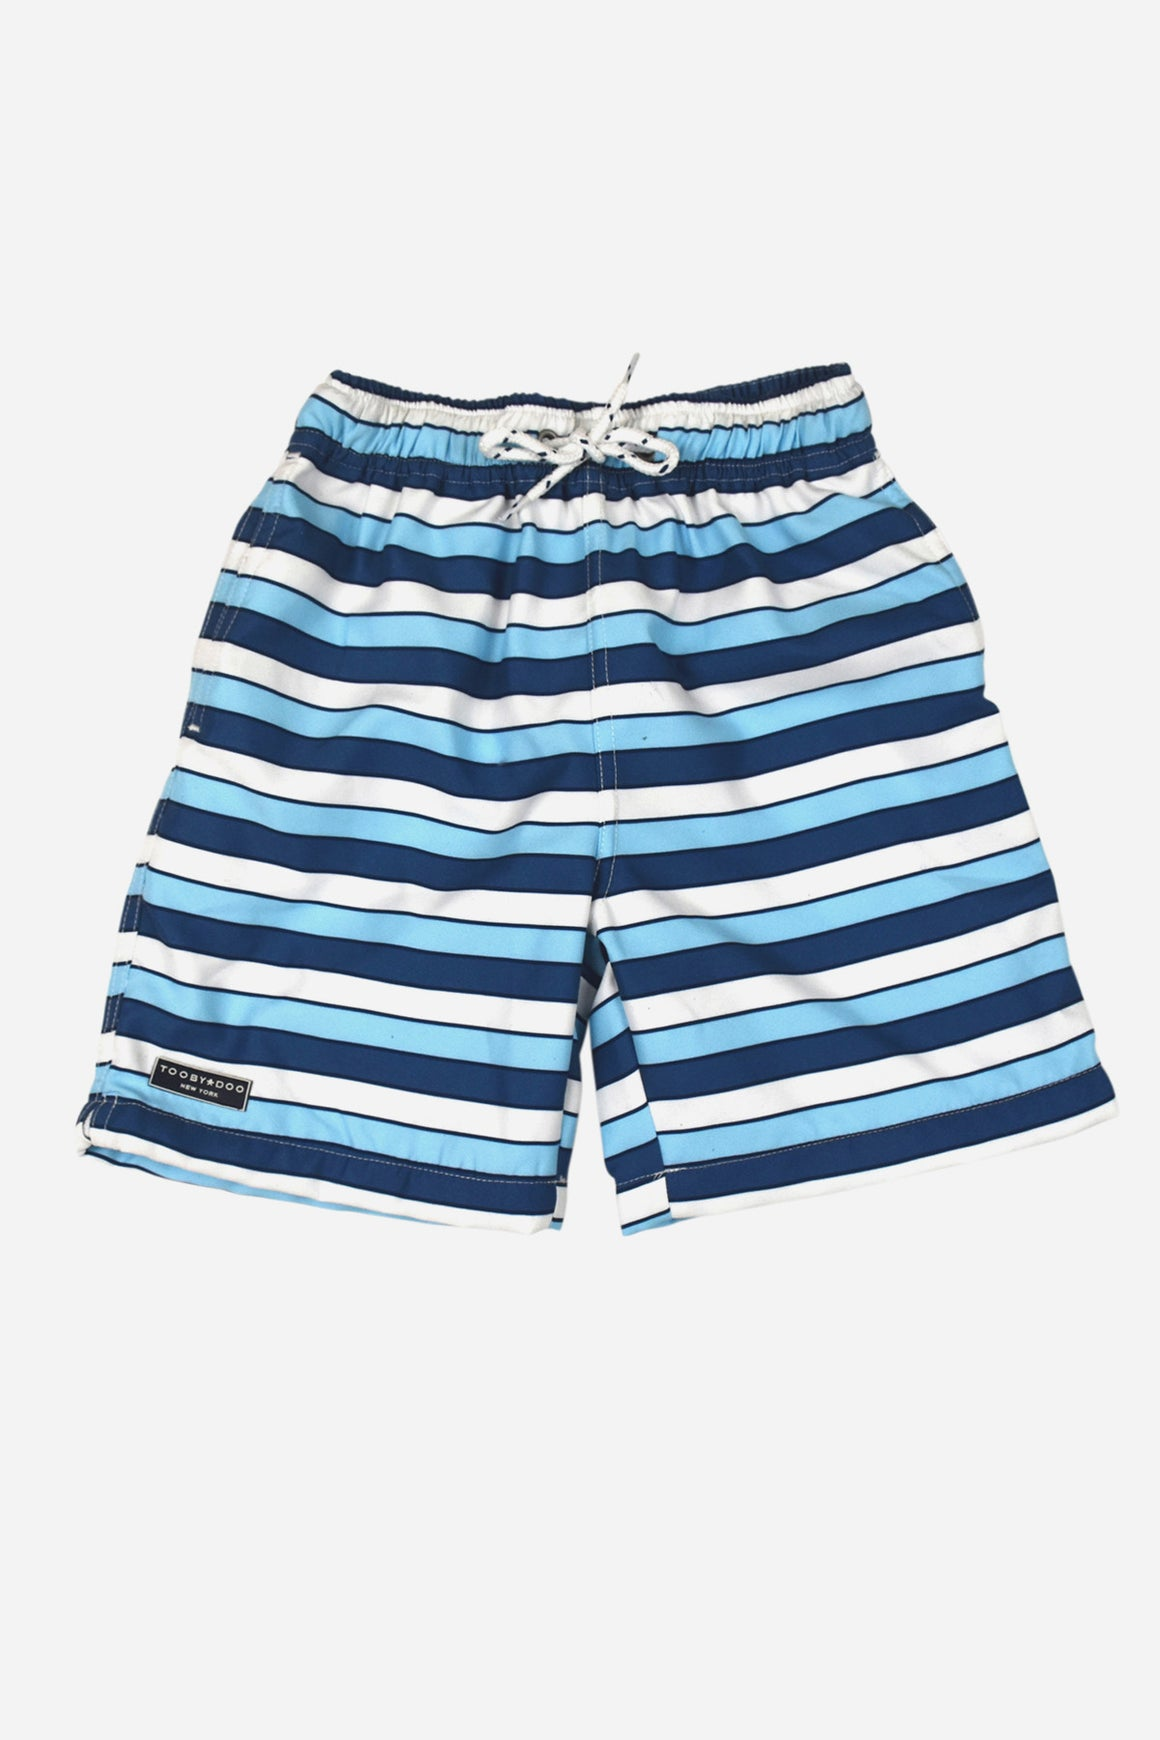 Toobydoo Blue Wave Swim Shorts